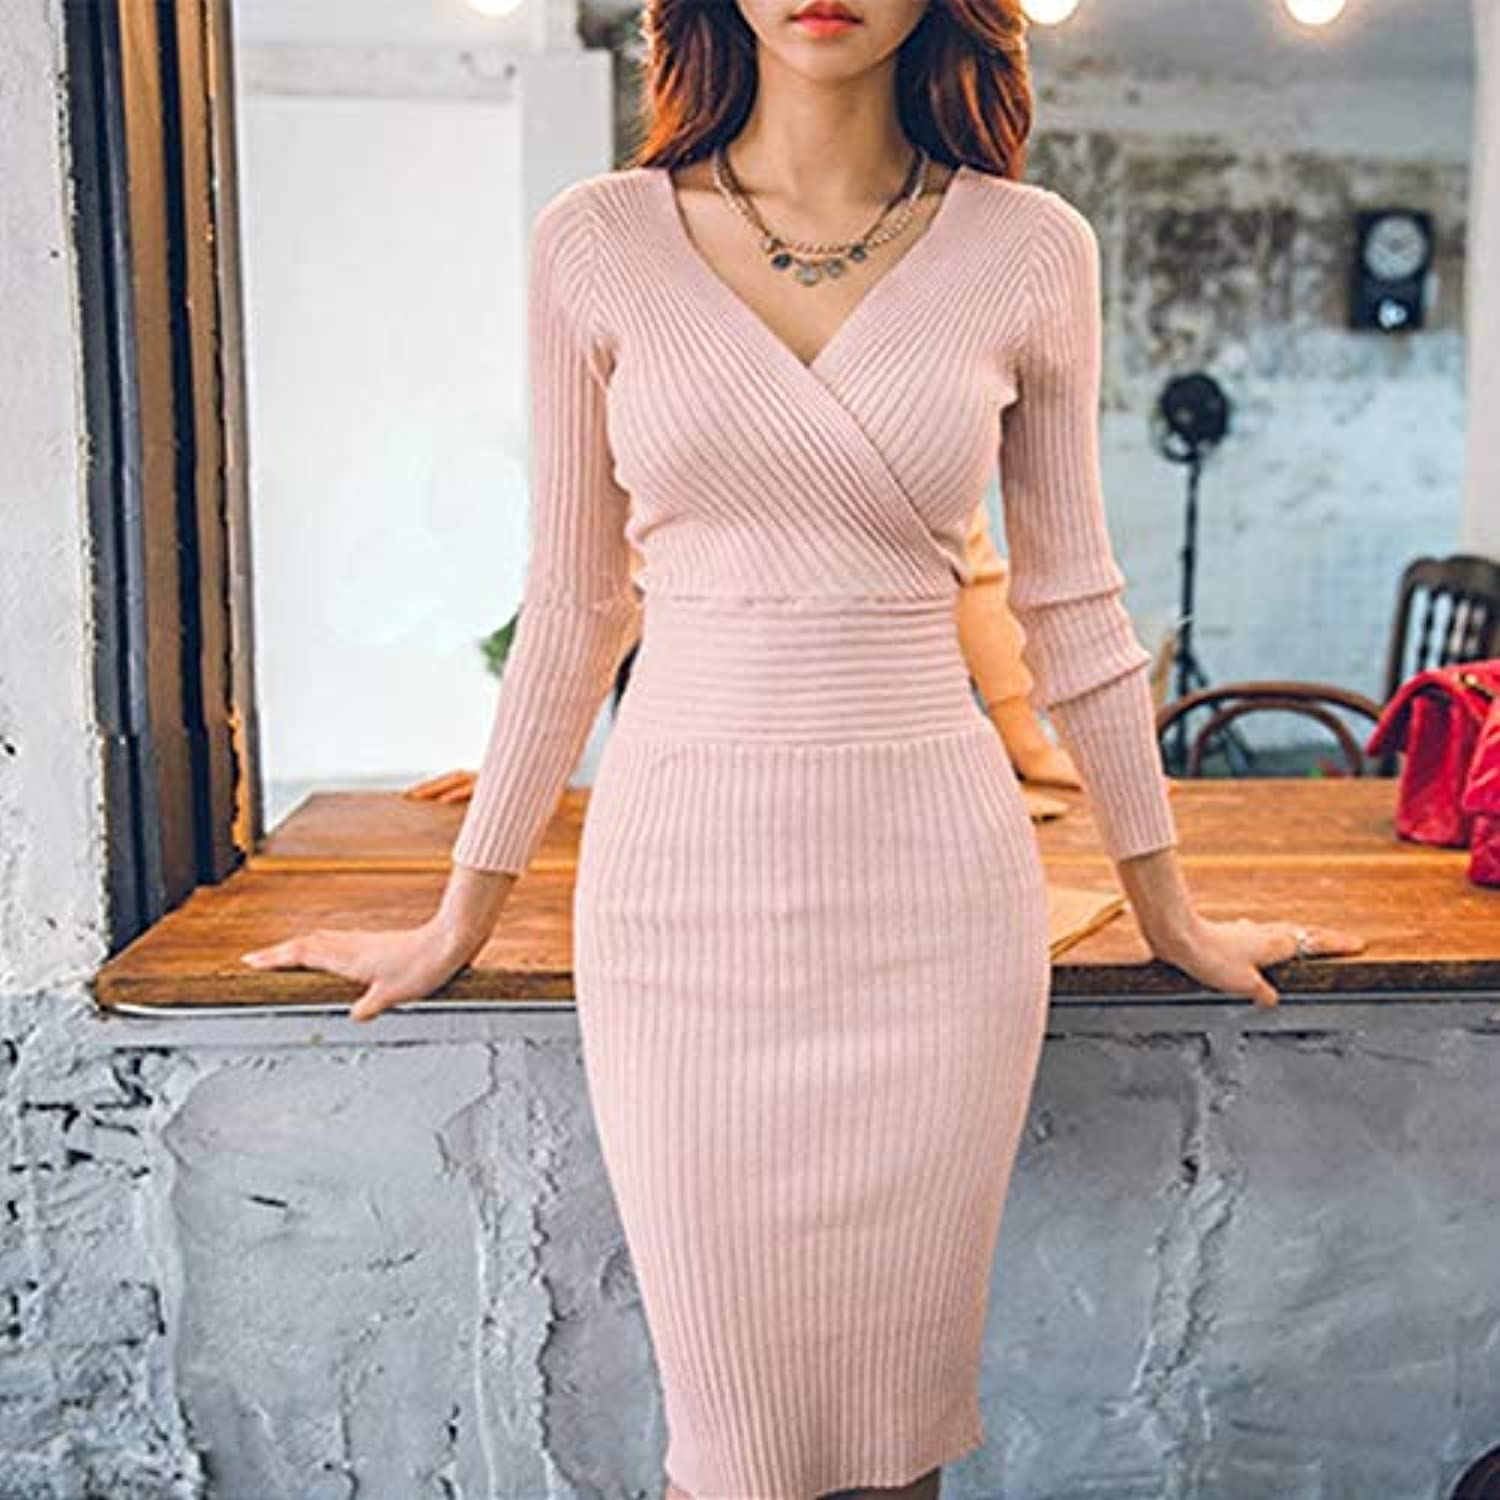 Cxlyq Dresses Fit 4570Kg Autumn Winter Women Knitted Cotton Skinny Sweater Dress VNeck Slim Dress Elegant Pink Party